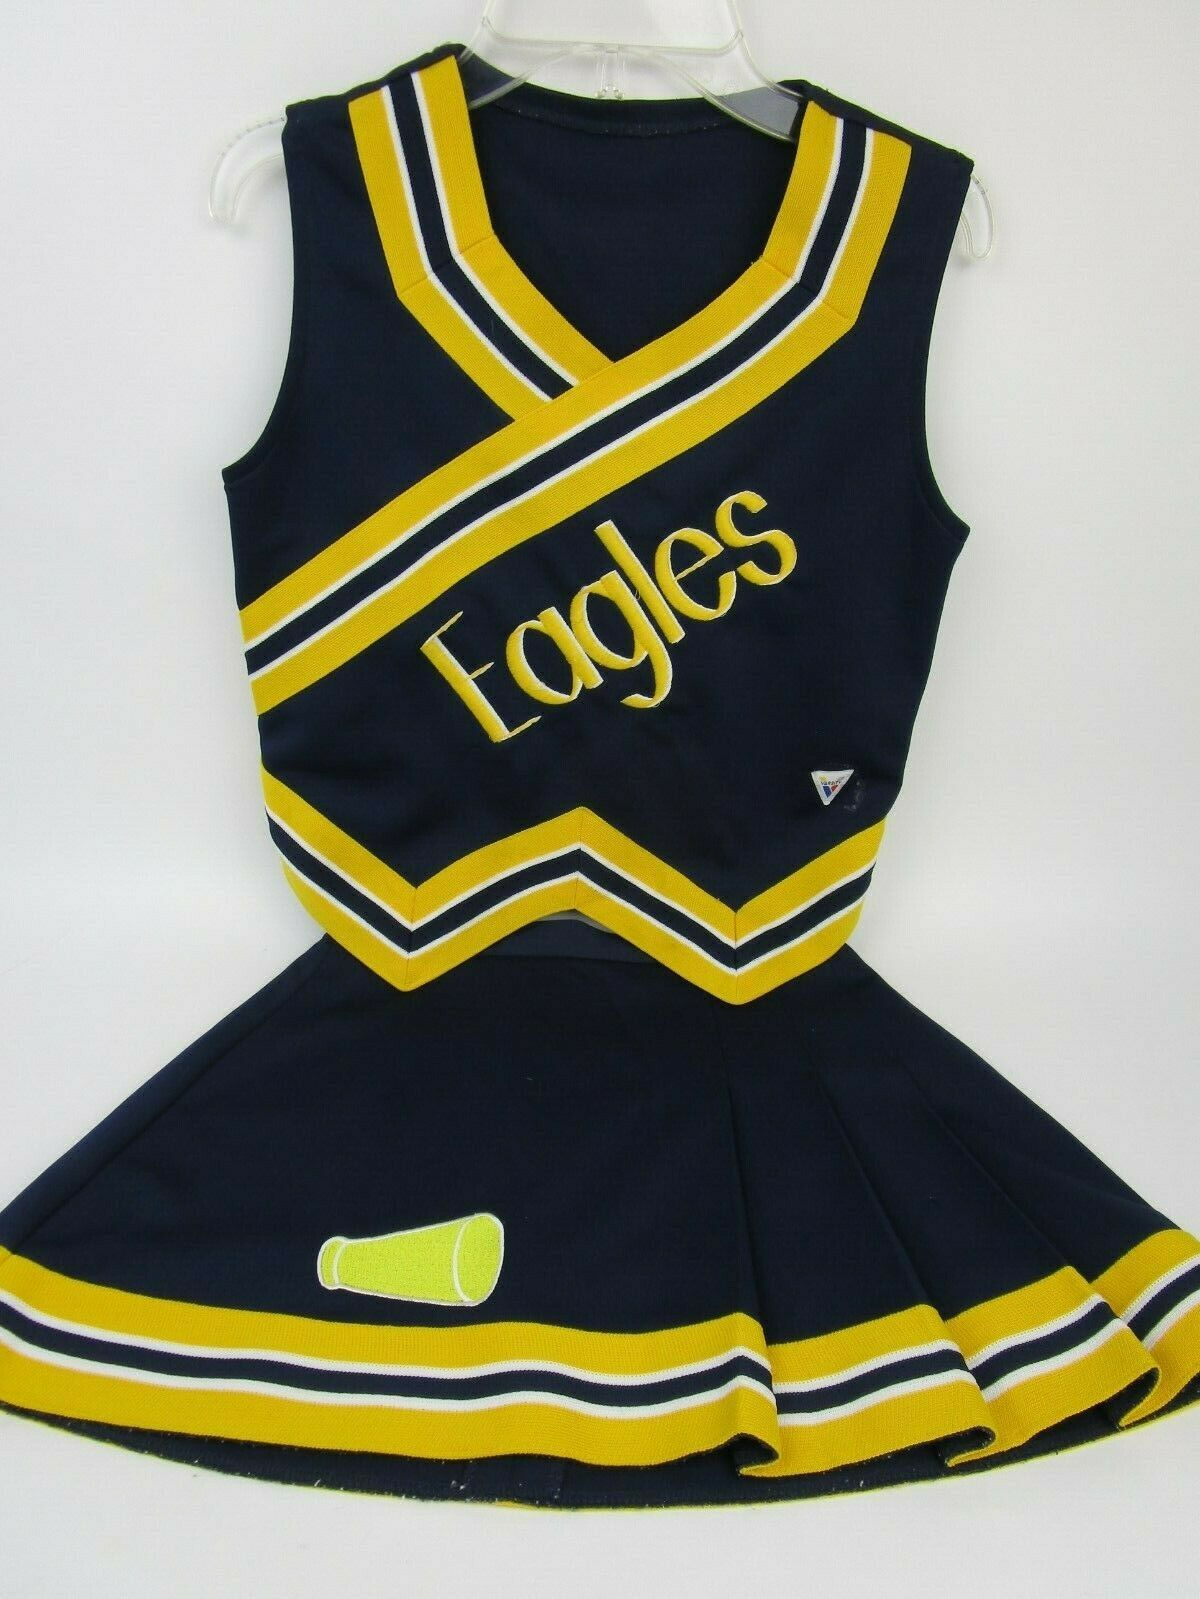 EAGLES Cheerleader Uniform Outfit 34  Top 26 Skirt Youth 2XL Navy blueee gold